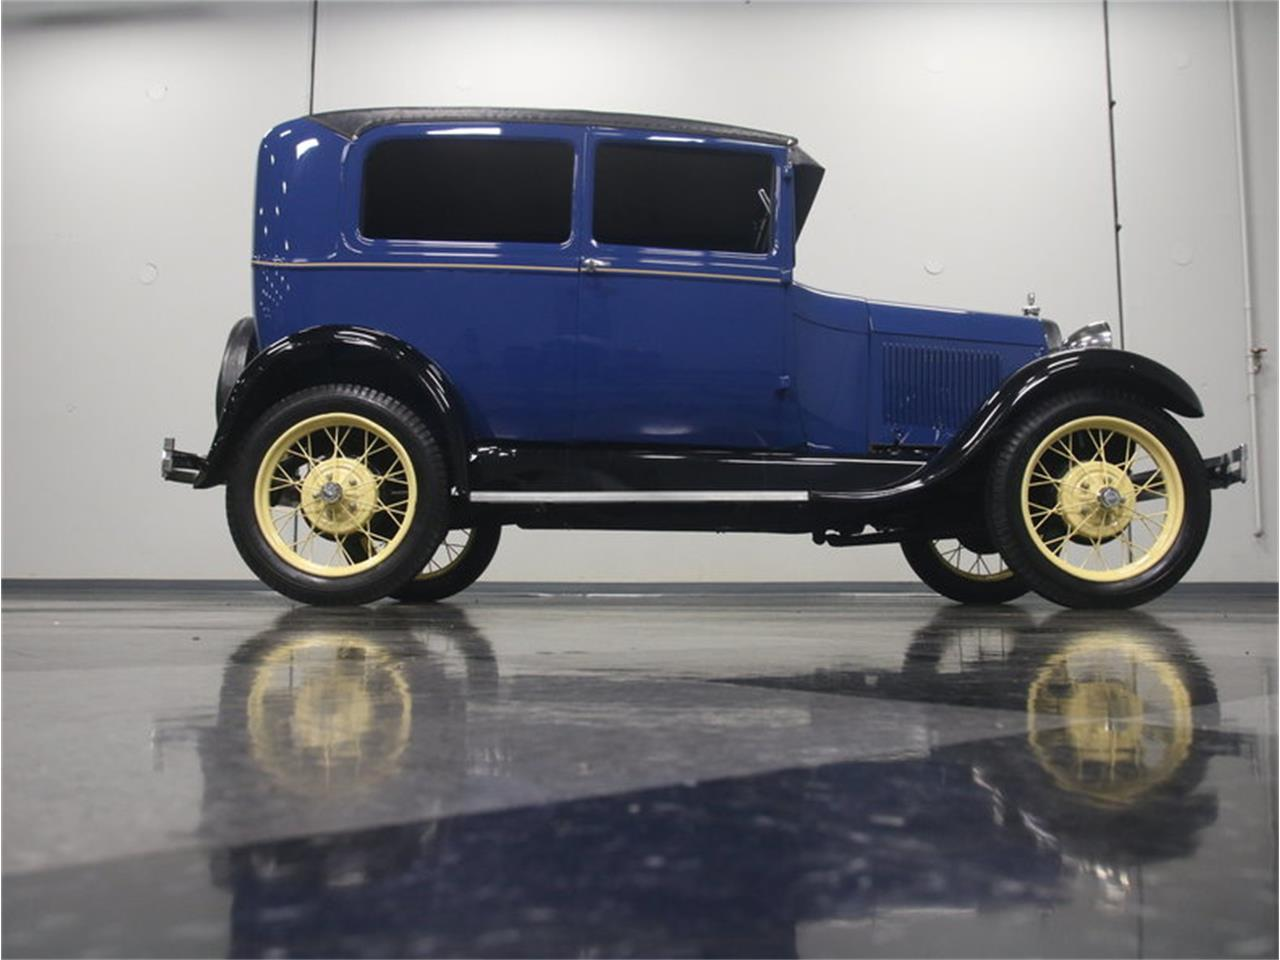 Large Picture of 1929 Ford Model A 2-Door Sedan - $19,995.00 - MO3U